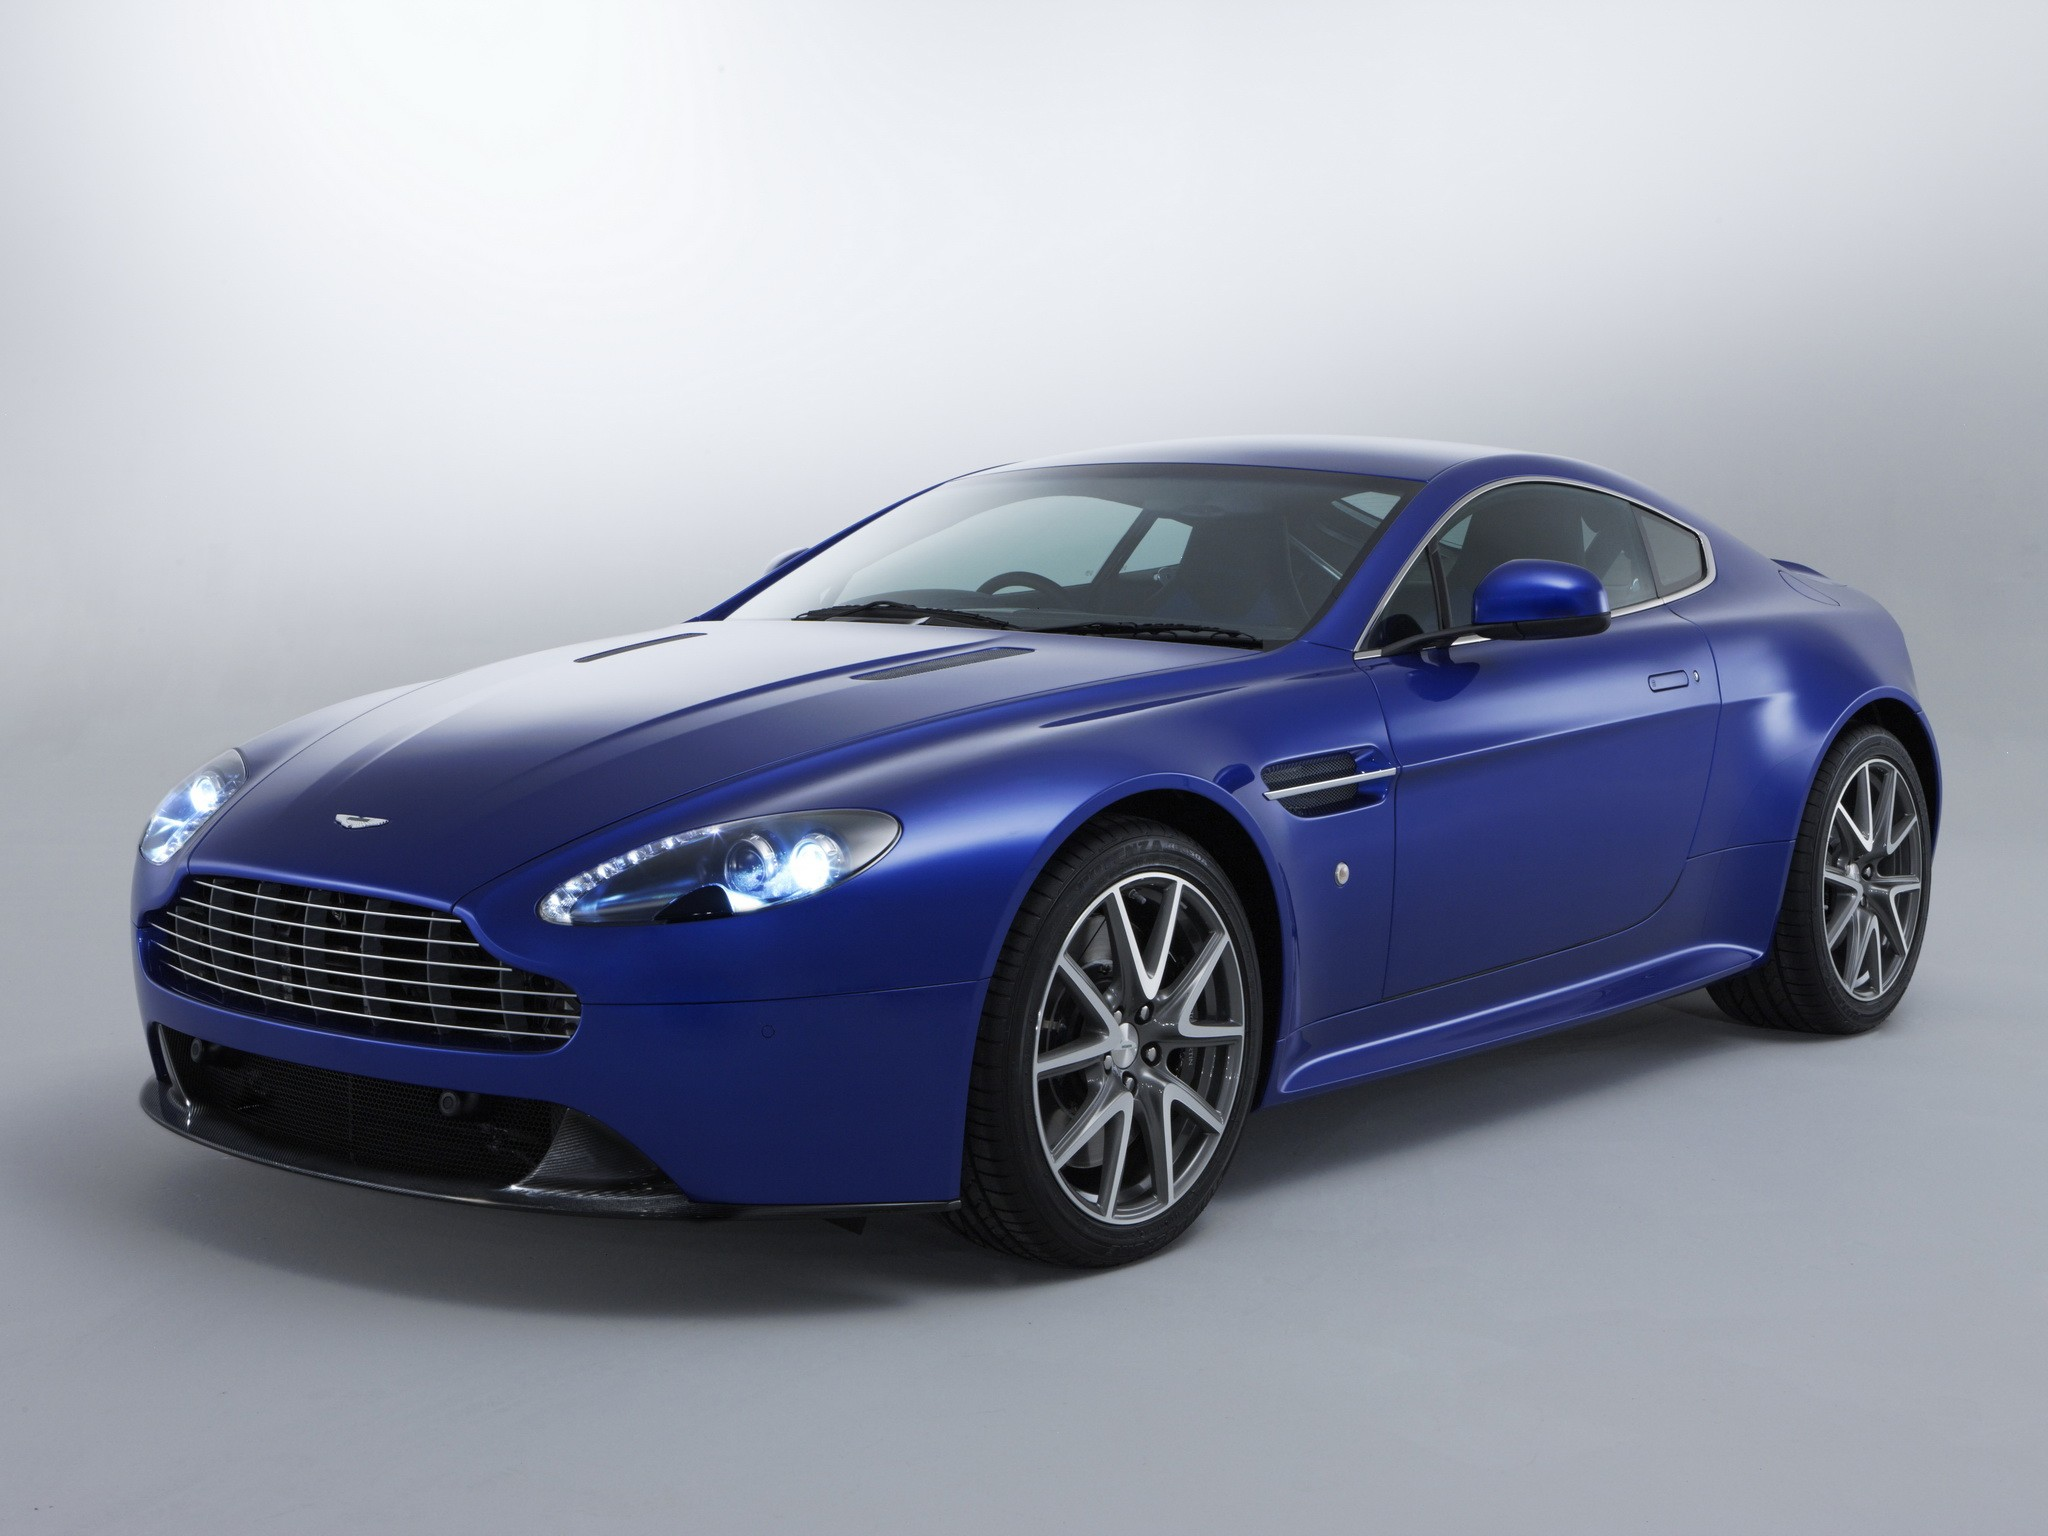 aston martin v8 vantage s specs photos 2011 2012 2013 2014 2015 2016 2017 2018. Black Bedroom Furniture Sets. Home Design Ideas